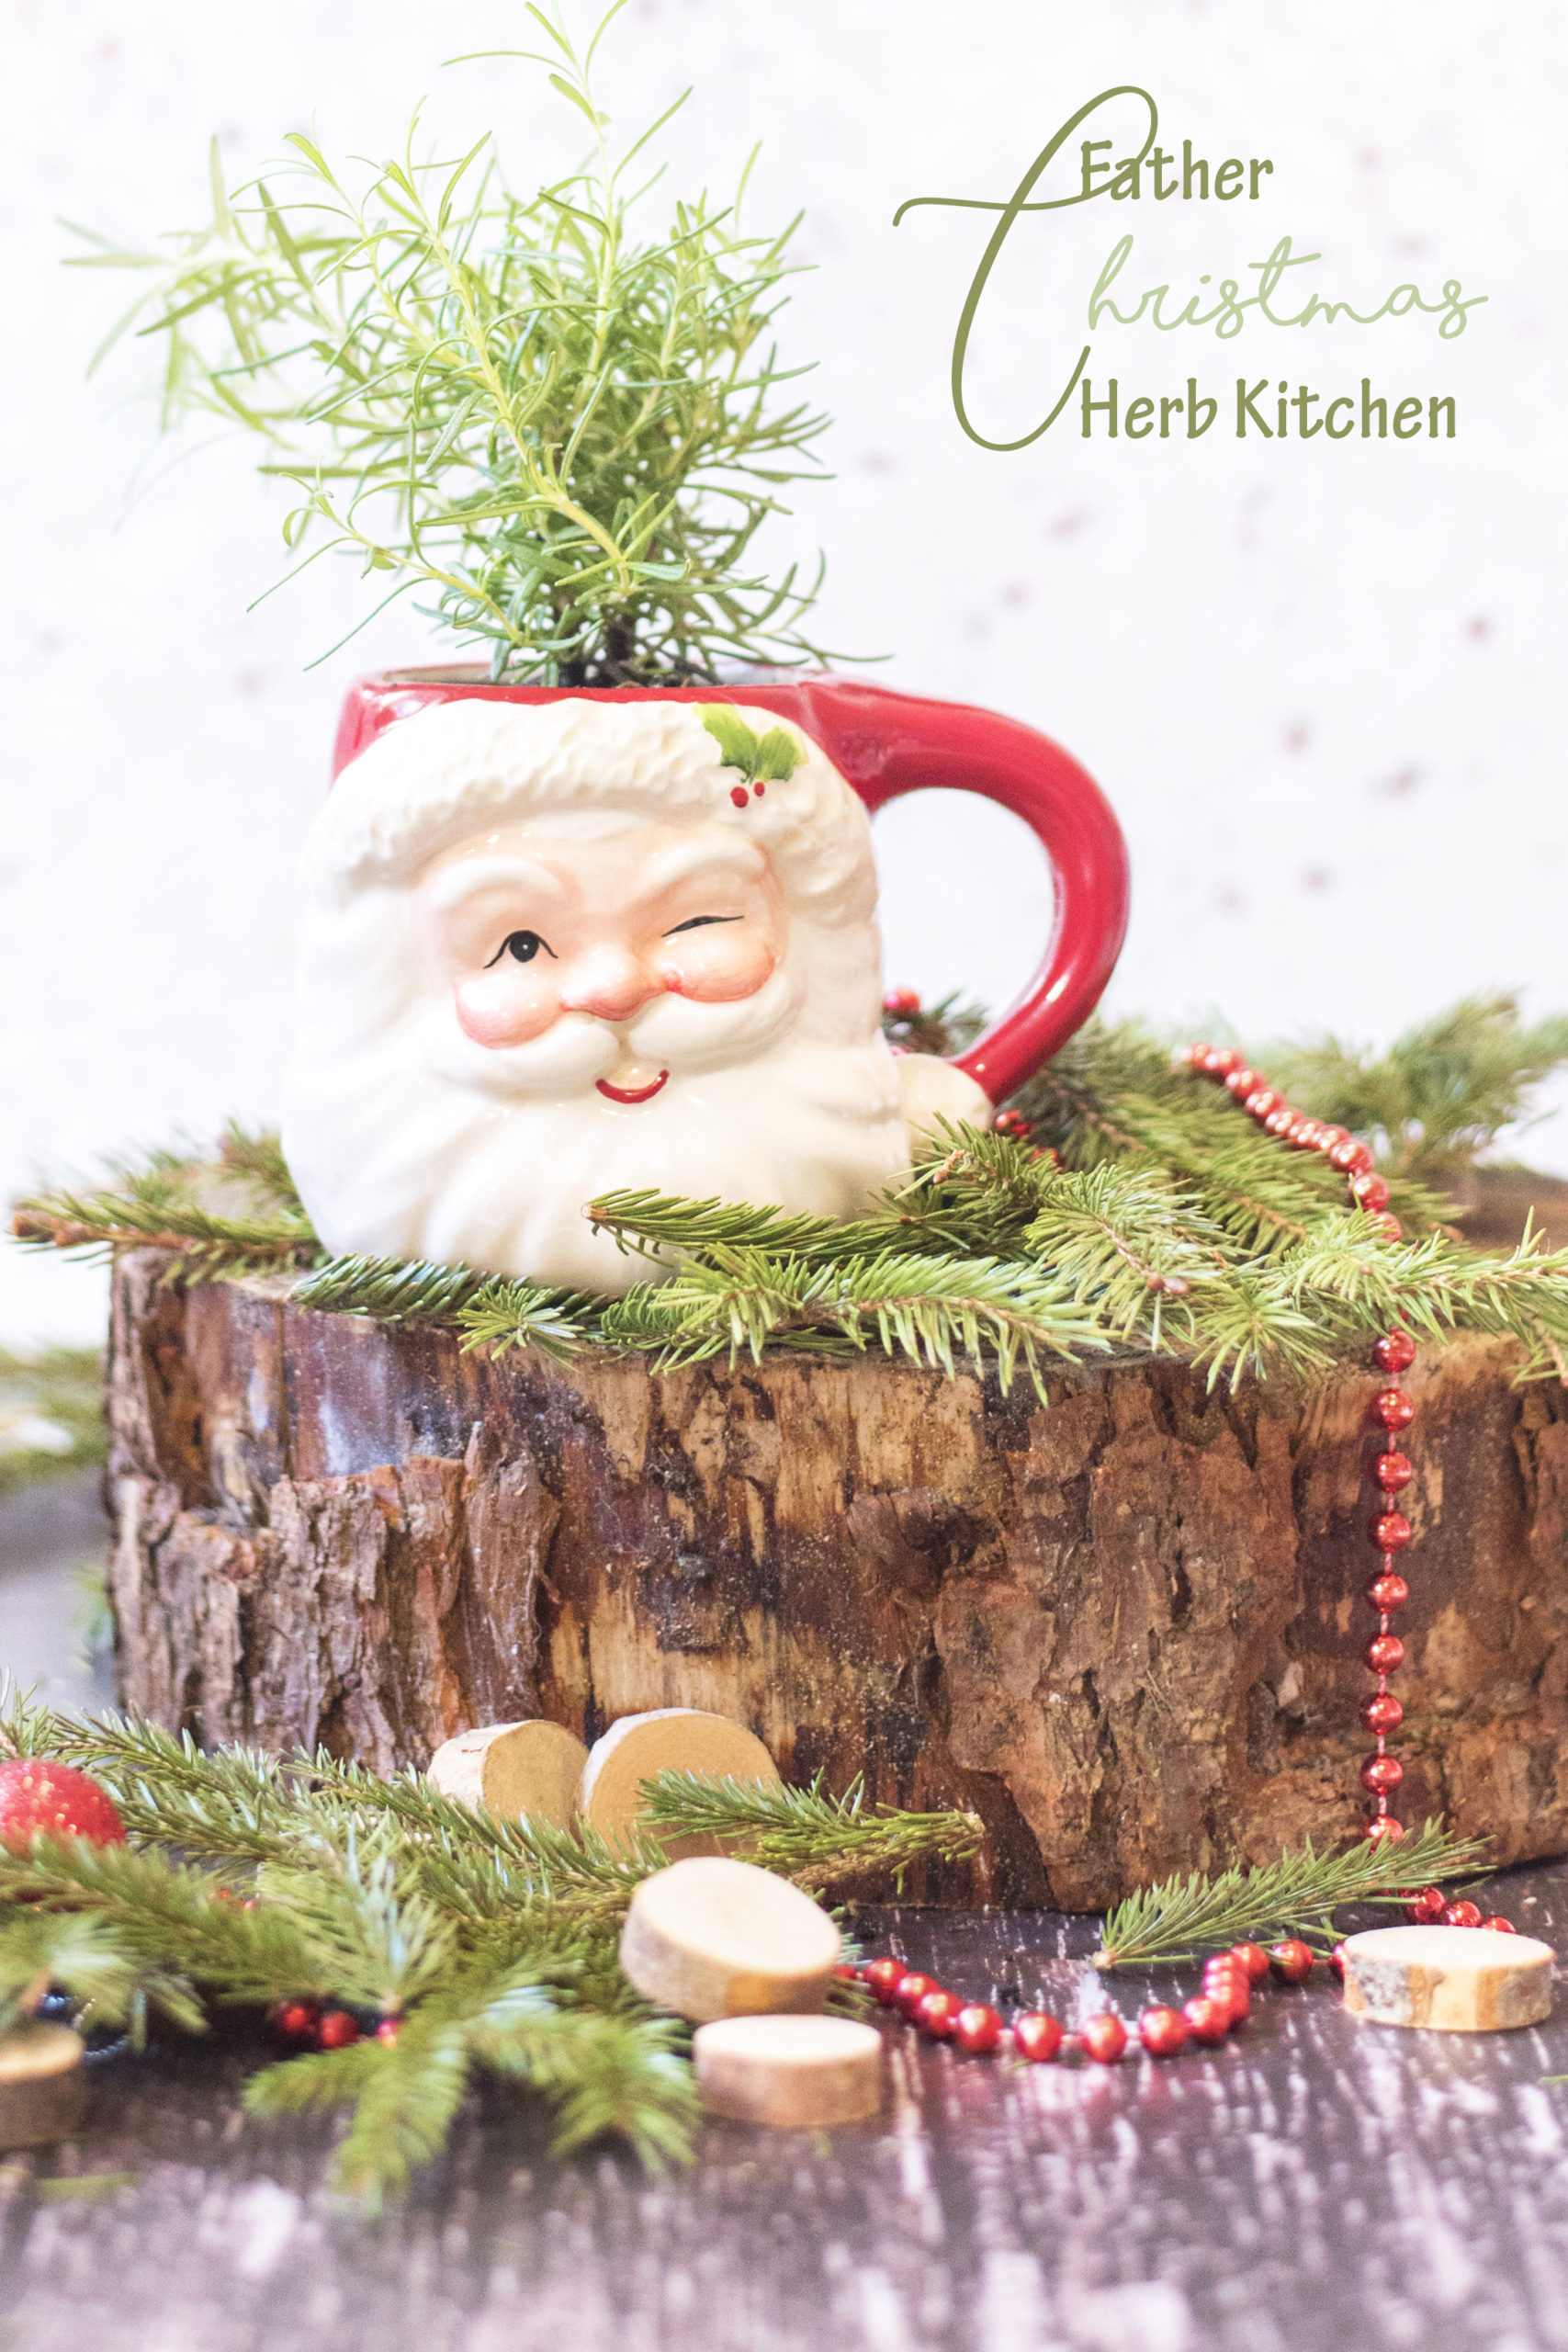 father christmas herb kitchen